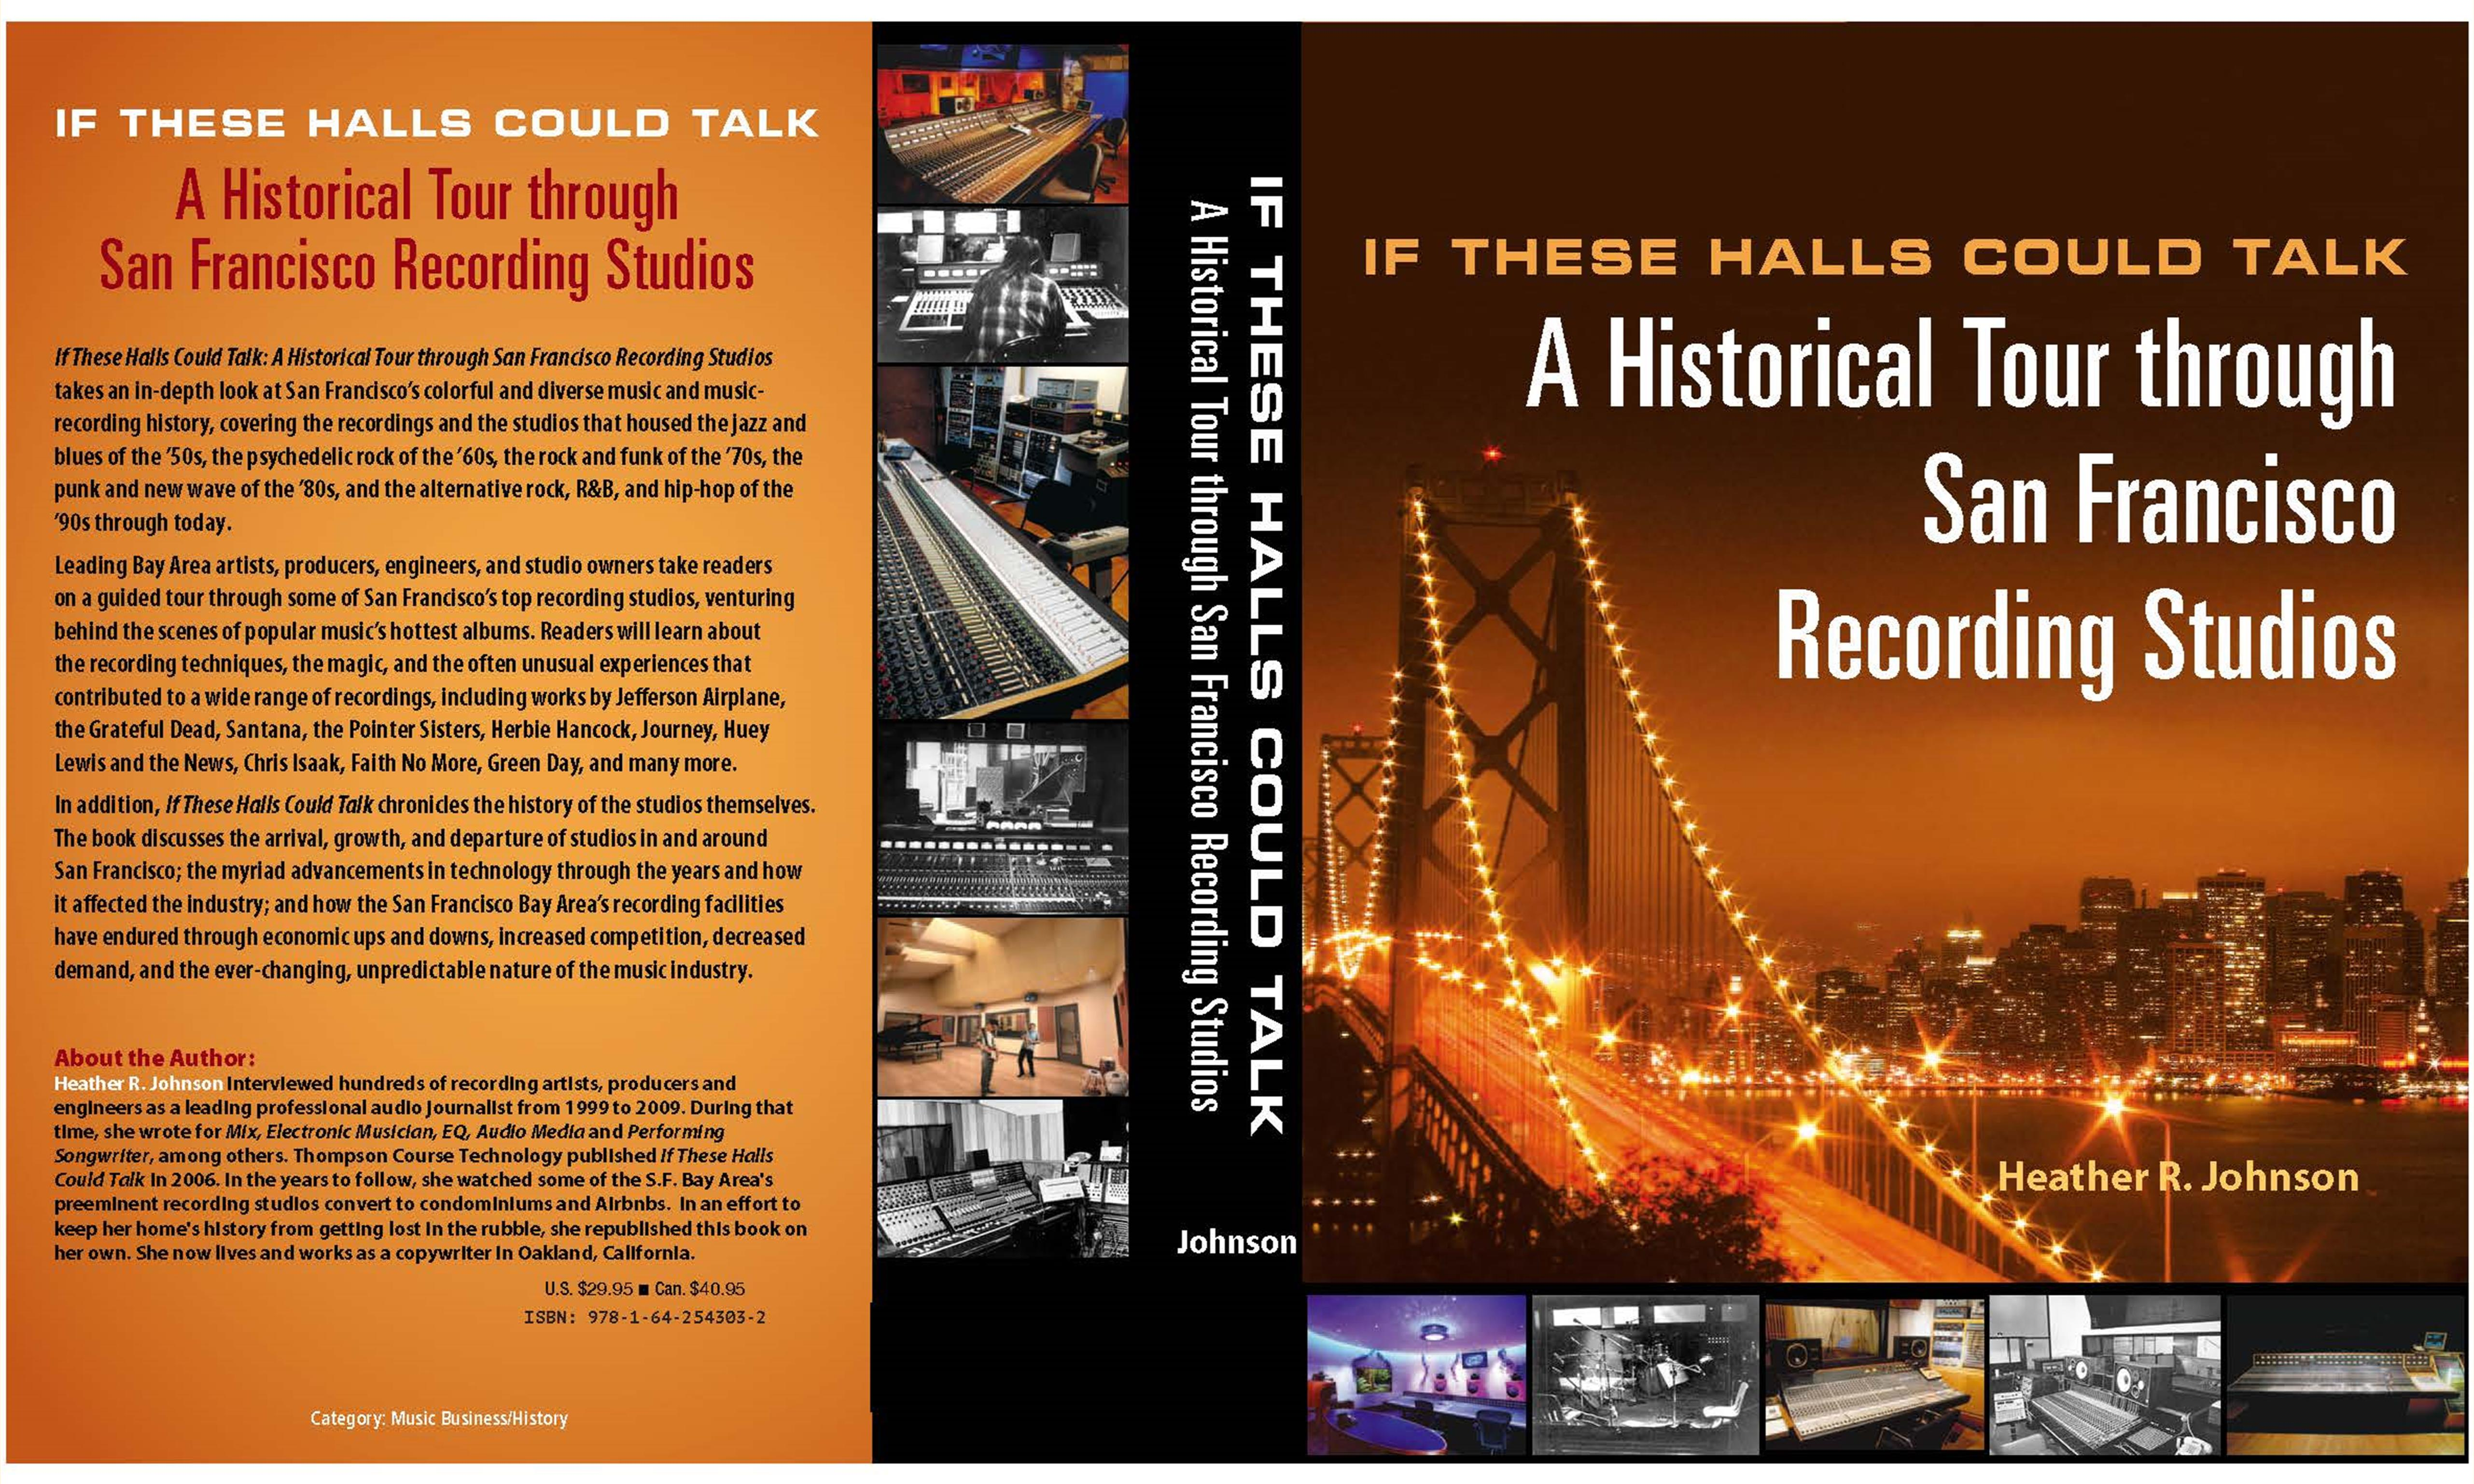 If These Halls Could Talk: A Historical Tour through San Francisco Recording Studios cover image